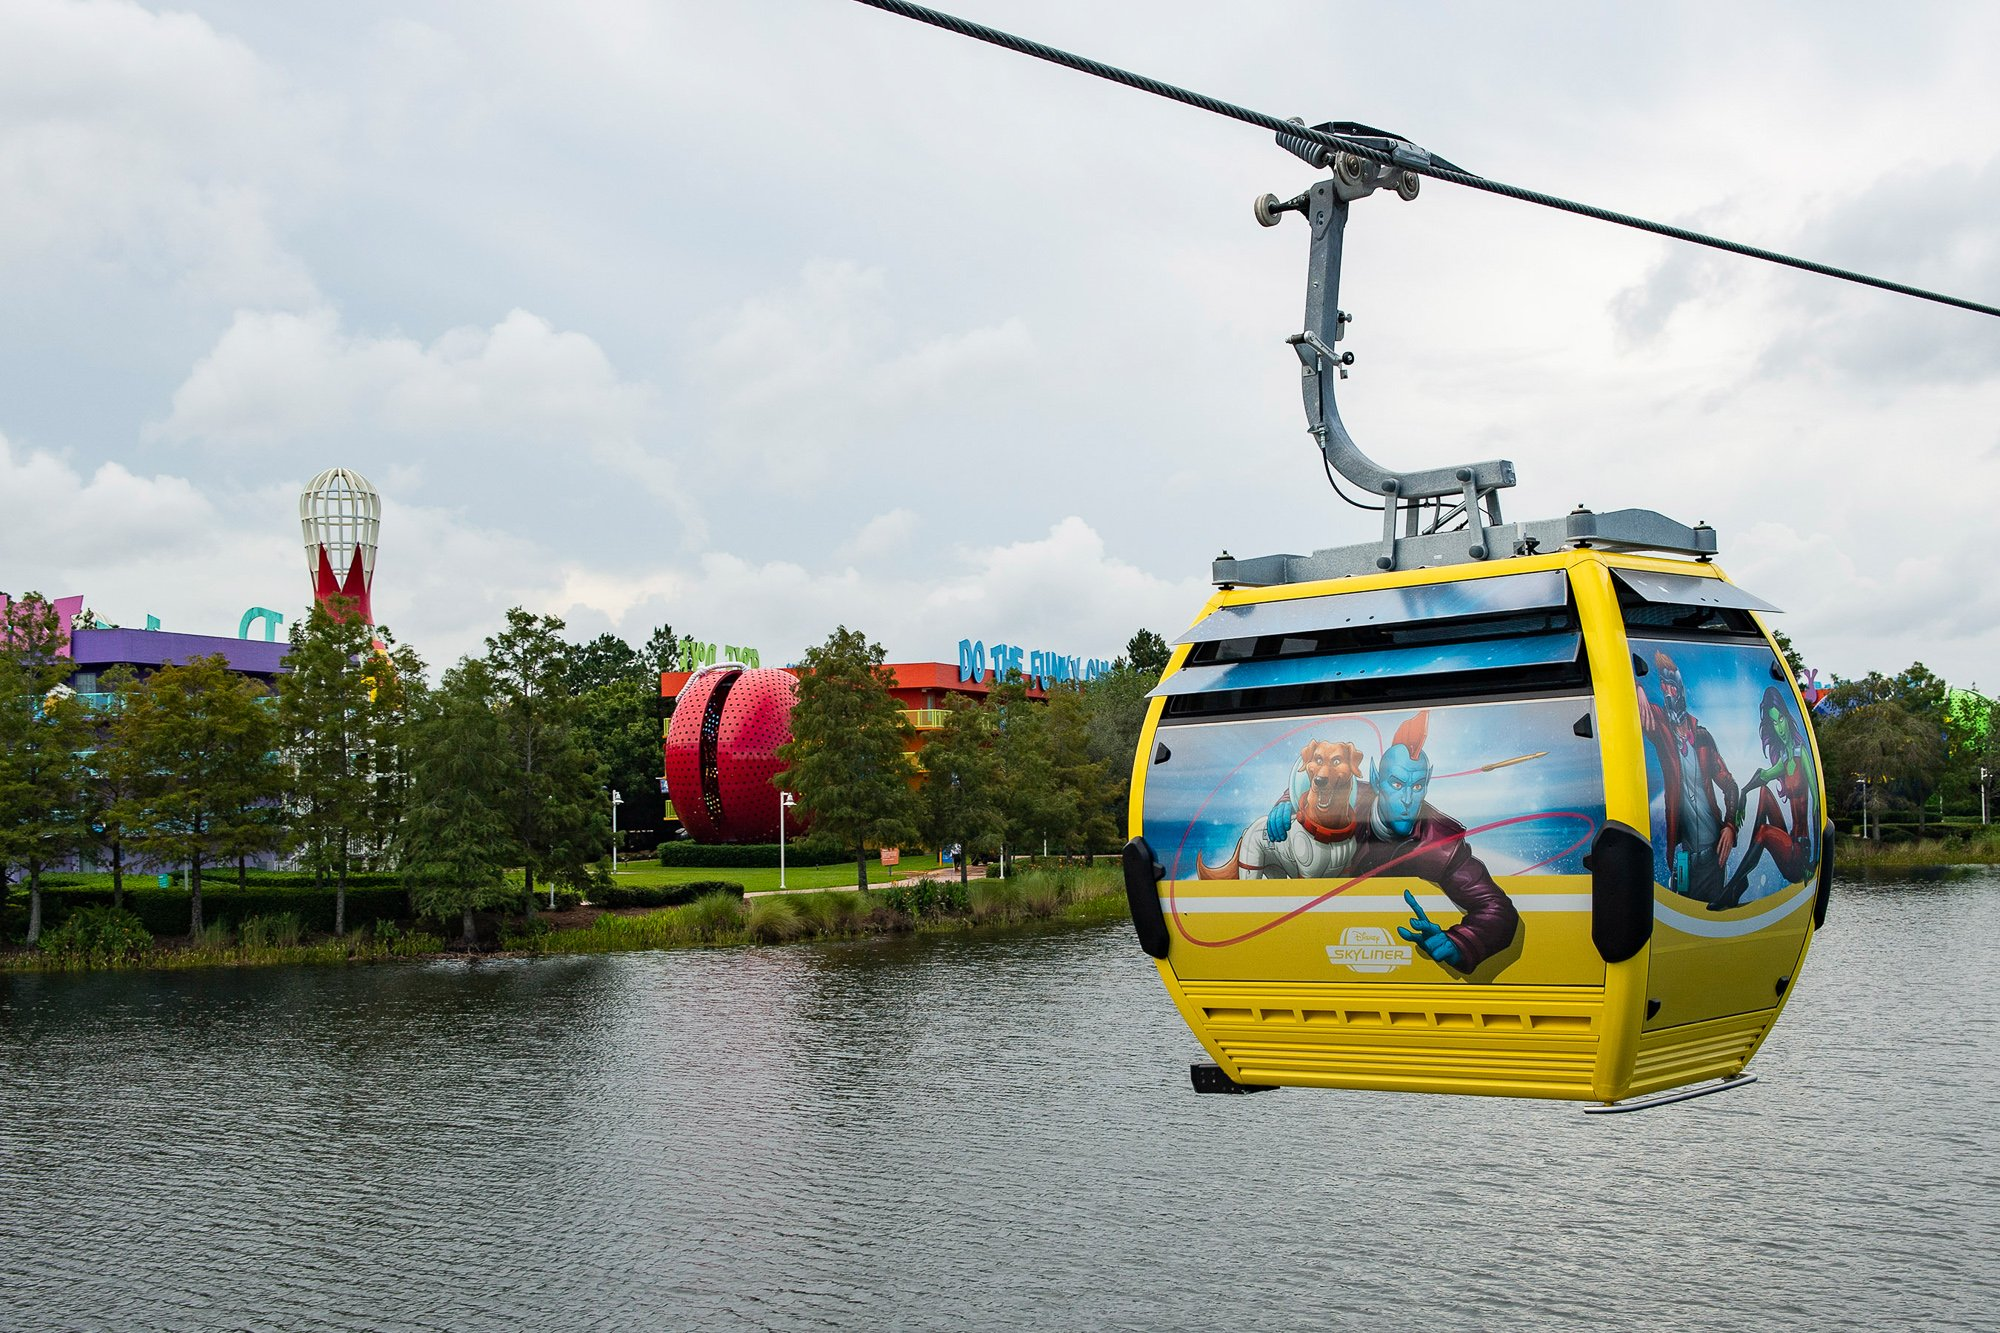 Disney Skyliner transportation